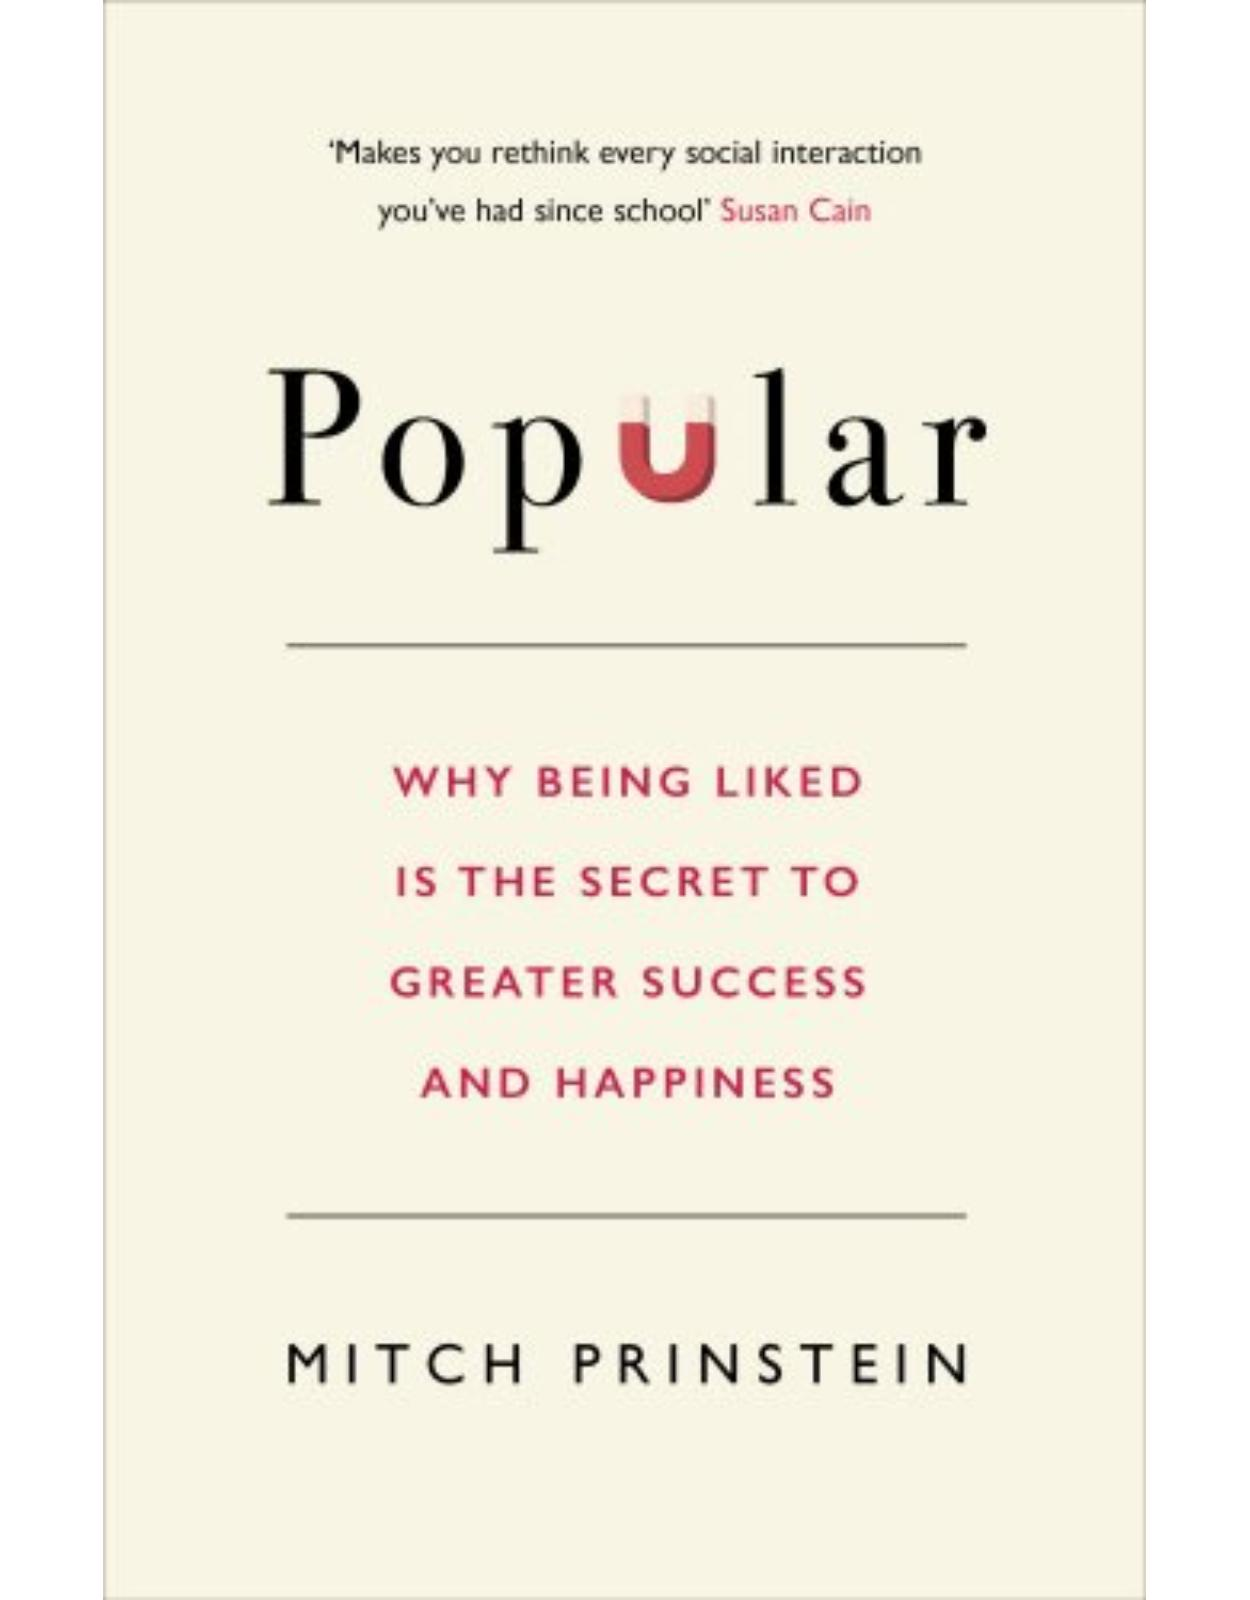 Popular: Why Being Liked is the Secret to Greater Success and Happiness